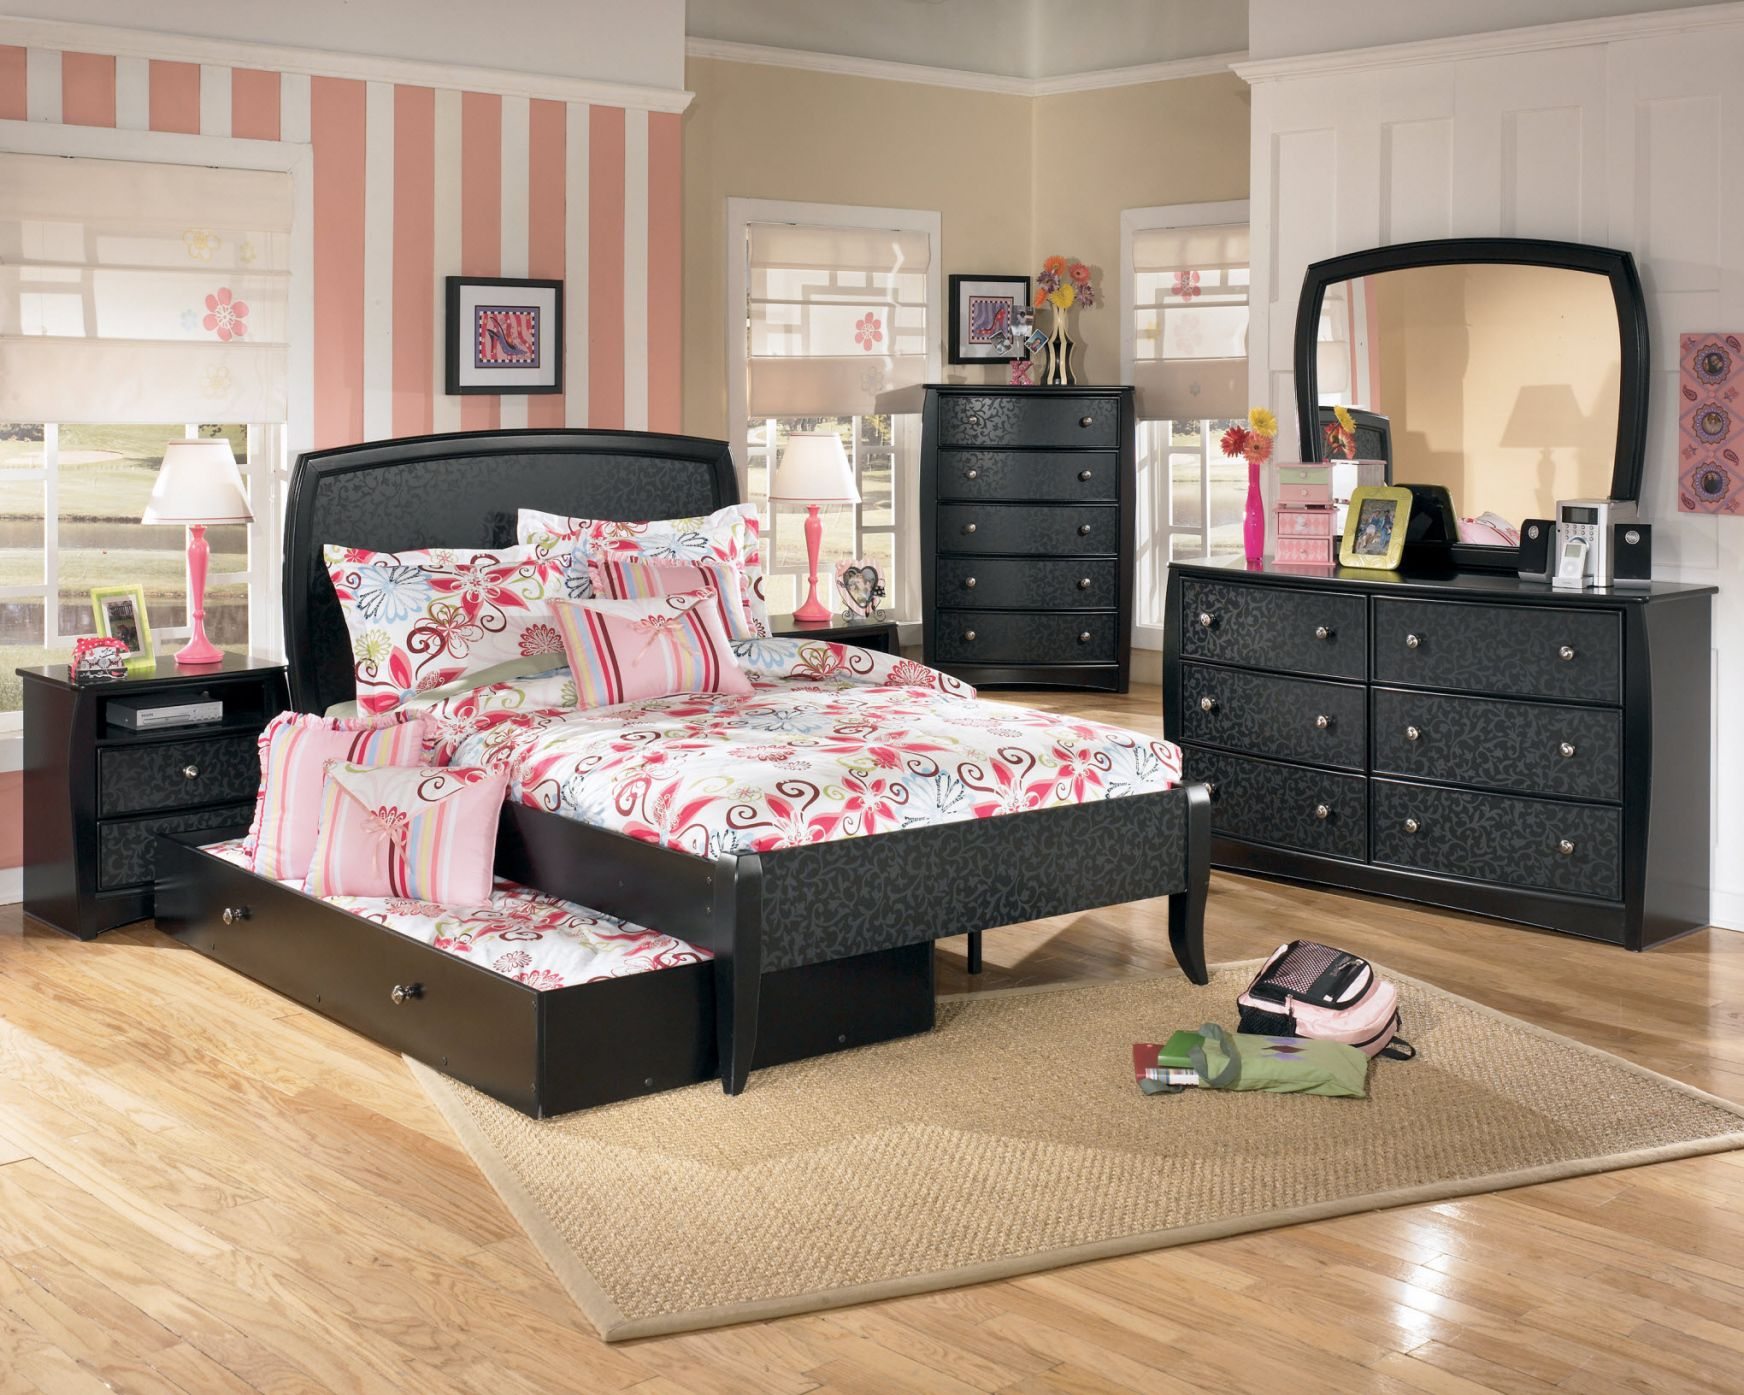 50 Kids Bedroom Furniture Target Interior Design Ideas On A Budget Check More